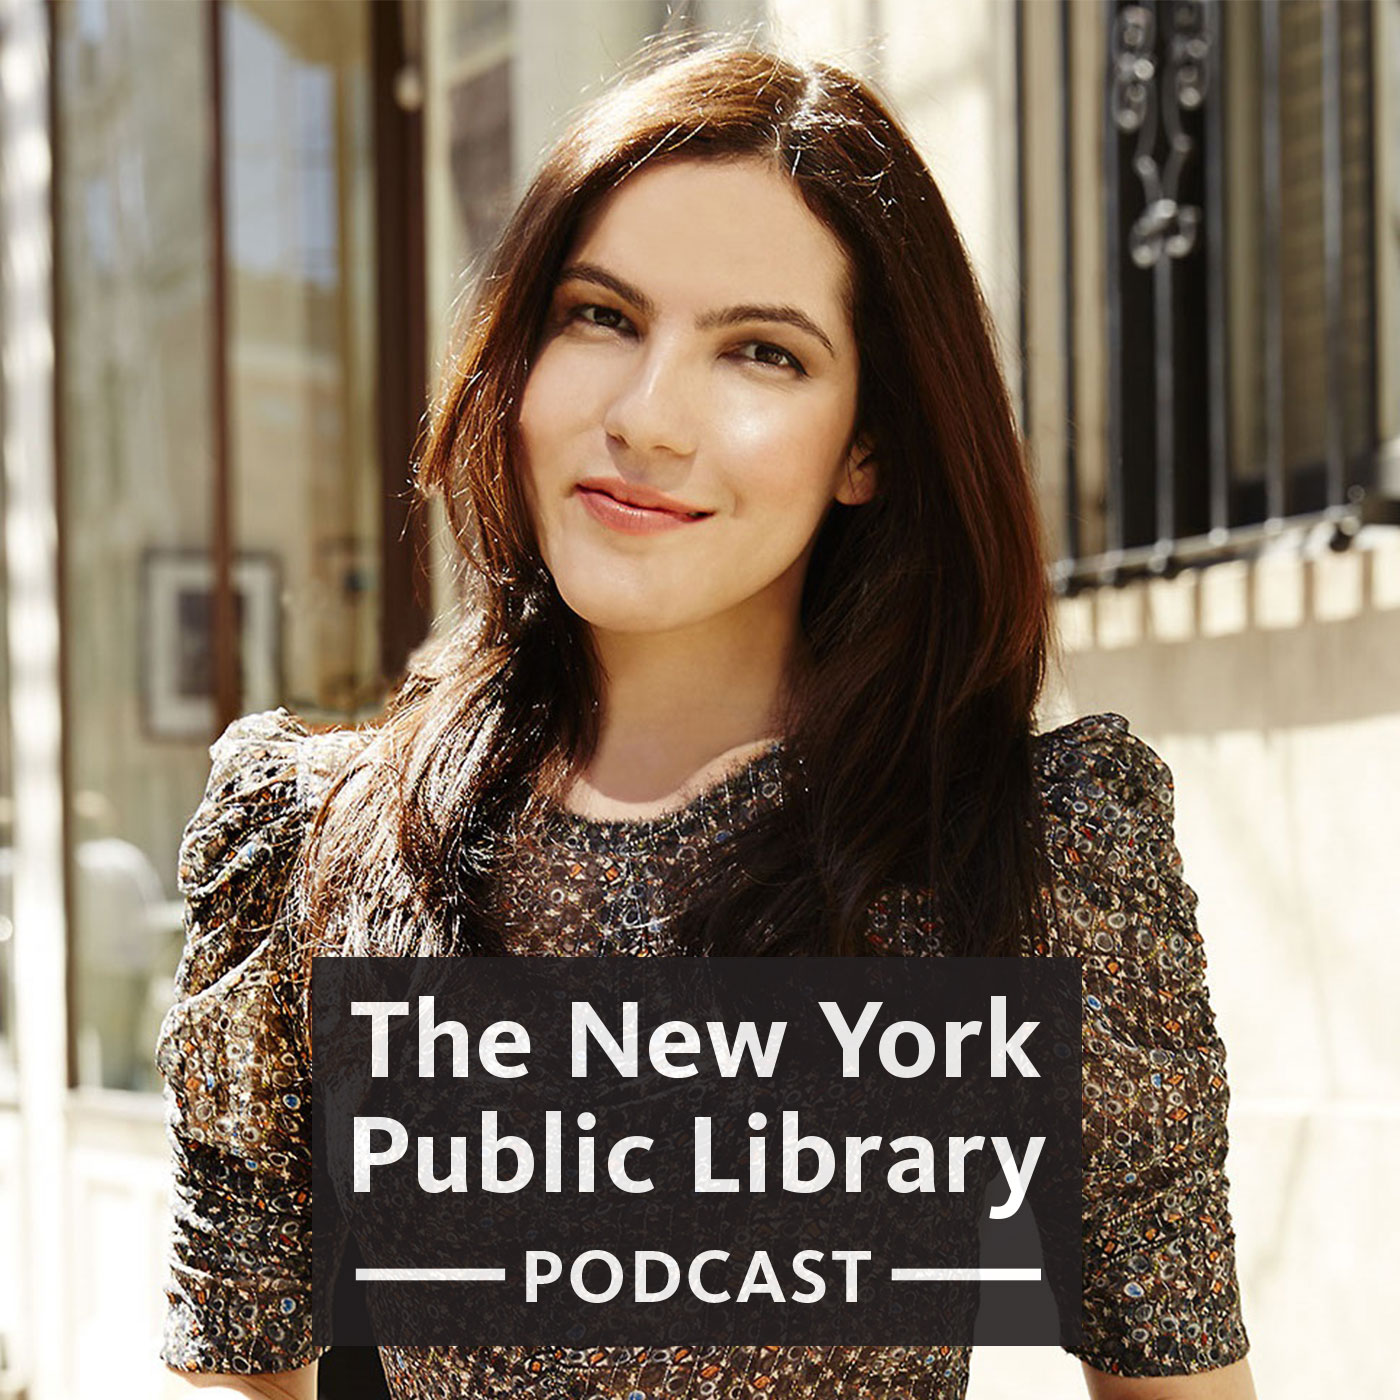 Sloane Crosley on College, Jewelry, & Publicity